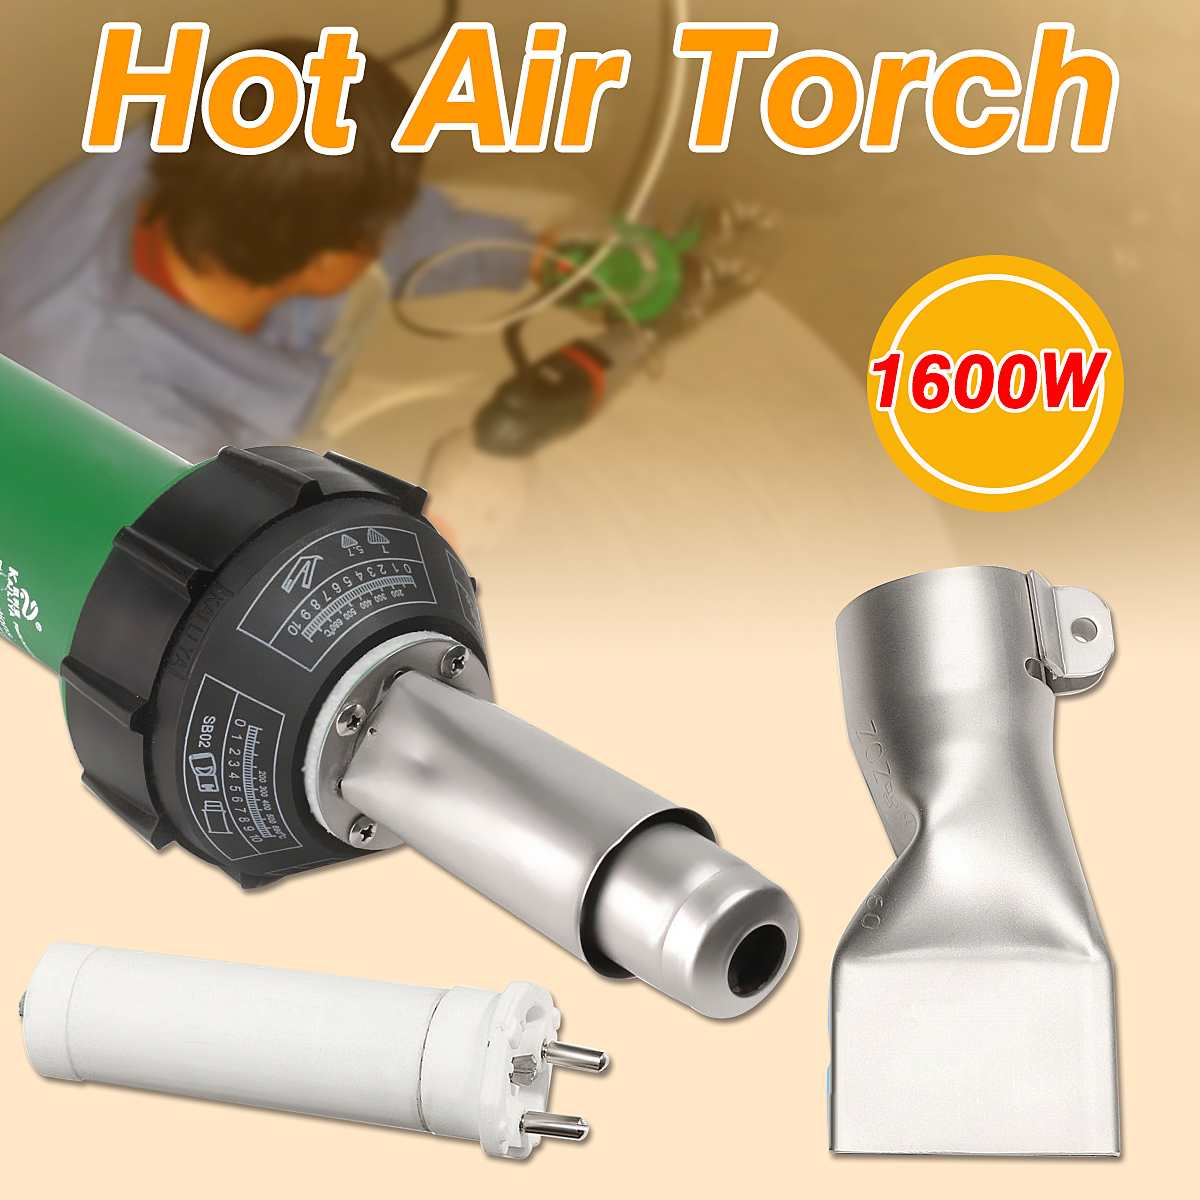 1Pcs  AC 220V 1600W 50/60Hz Hot Air Torch Plastic Welding-Gun For Welder + Flat Nose Wholesale Price High Quality